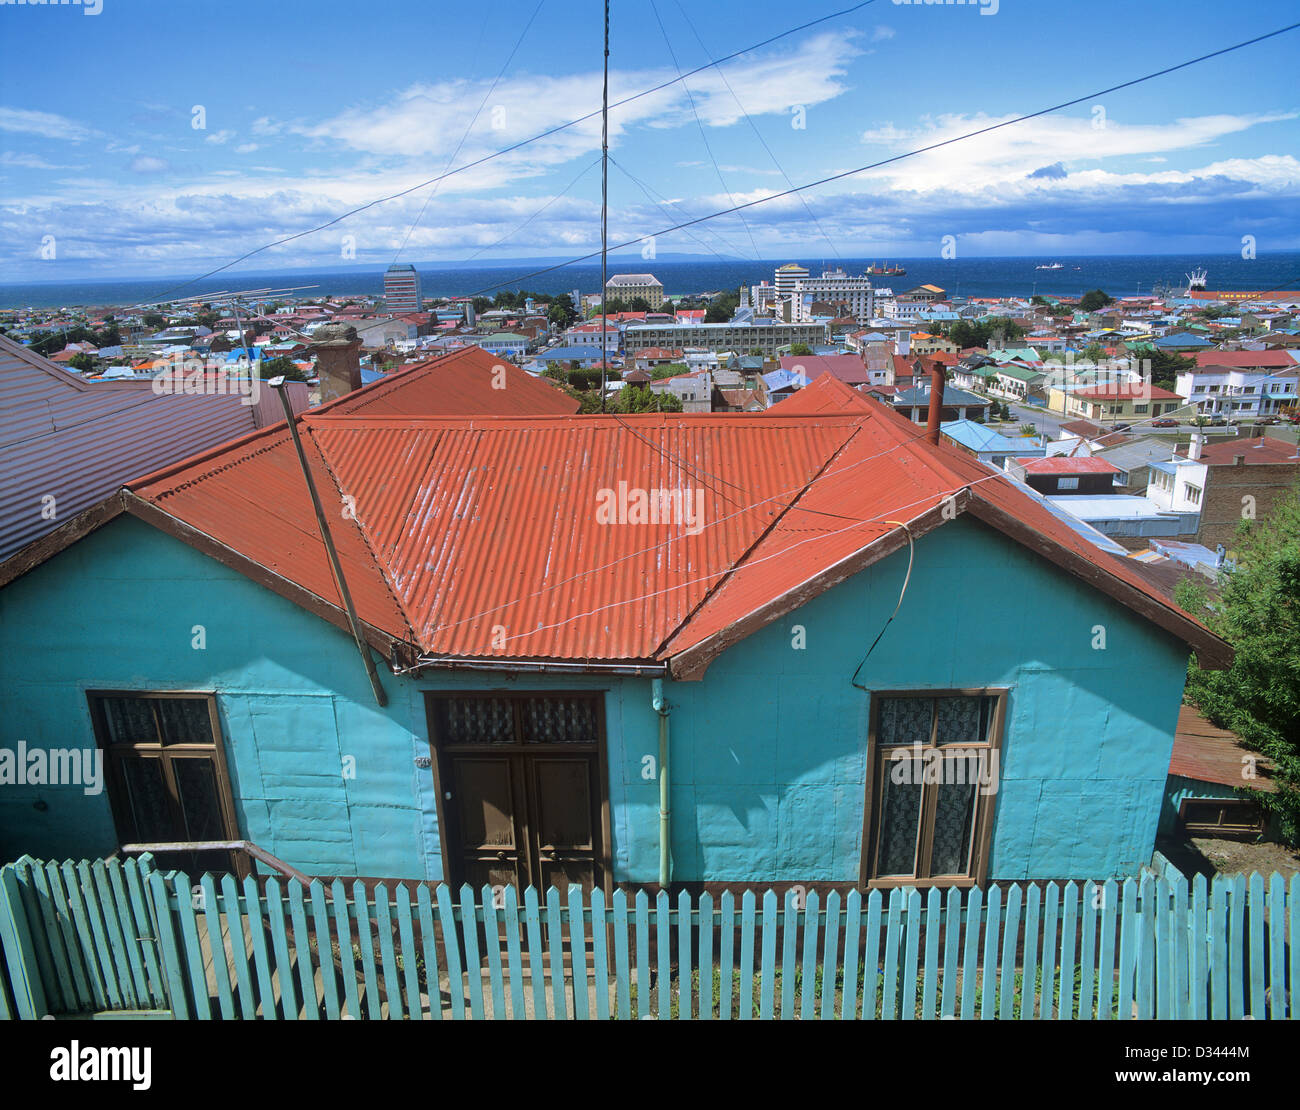 Chile, Region Magallanes, view over the colourful roofs of Punta Arenas towards the Strait of Magellan - Stock Image